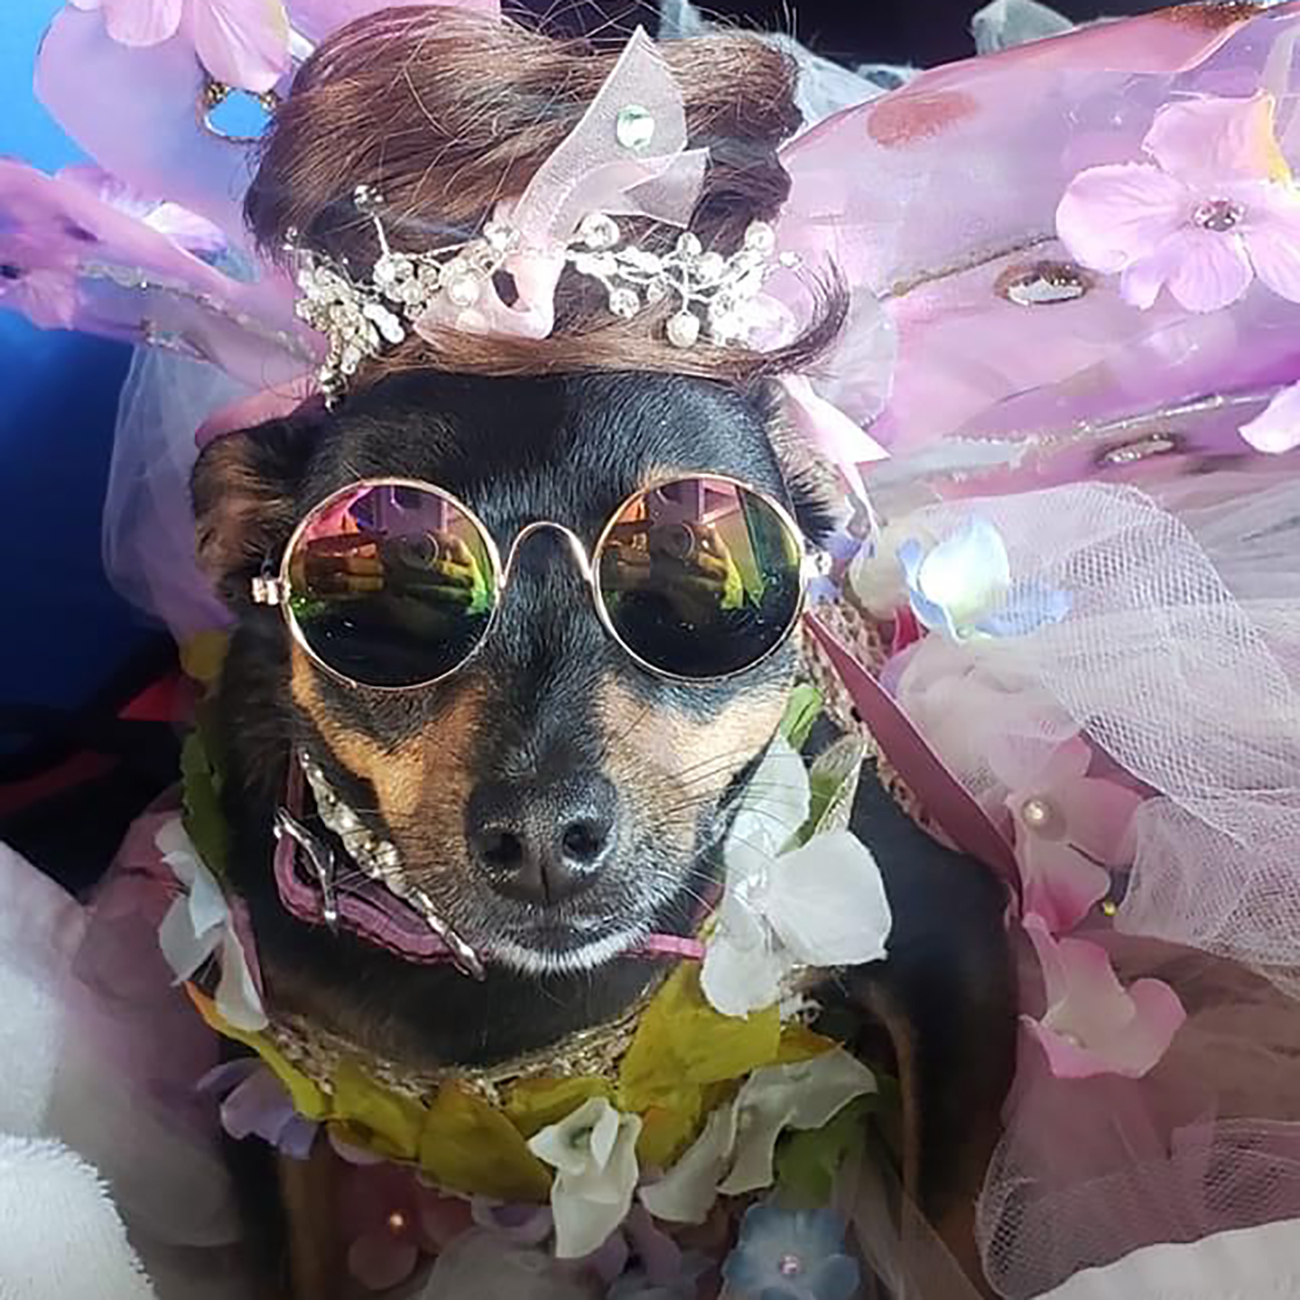 Presley the dog in a floral pink tutu and sunglasses